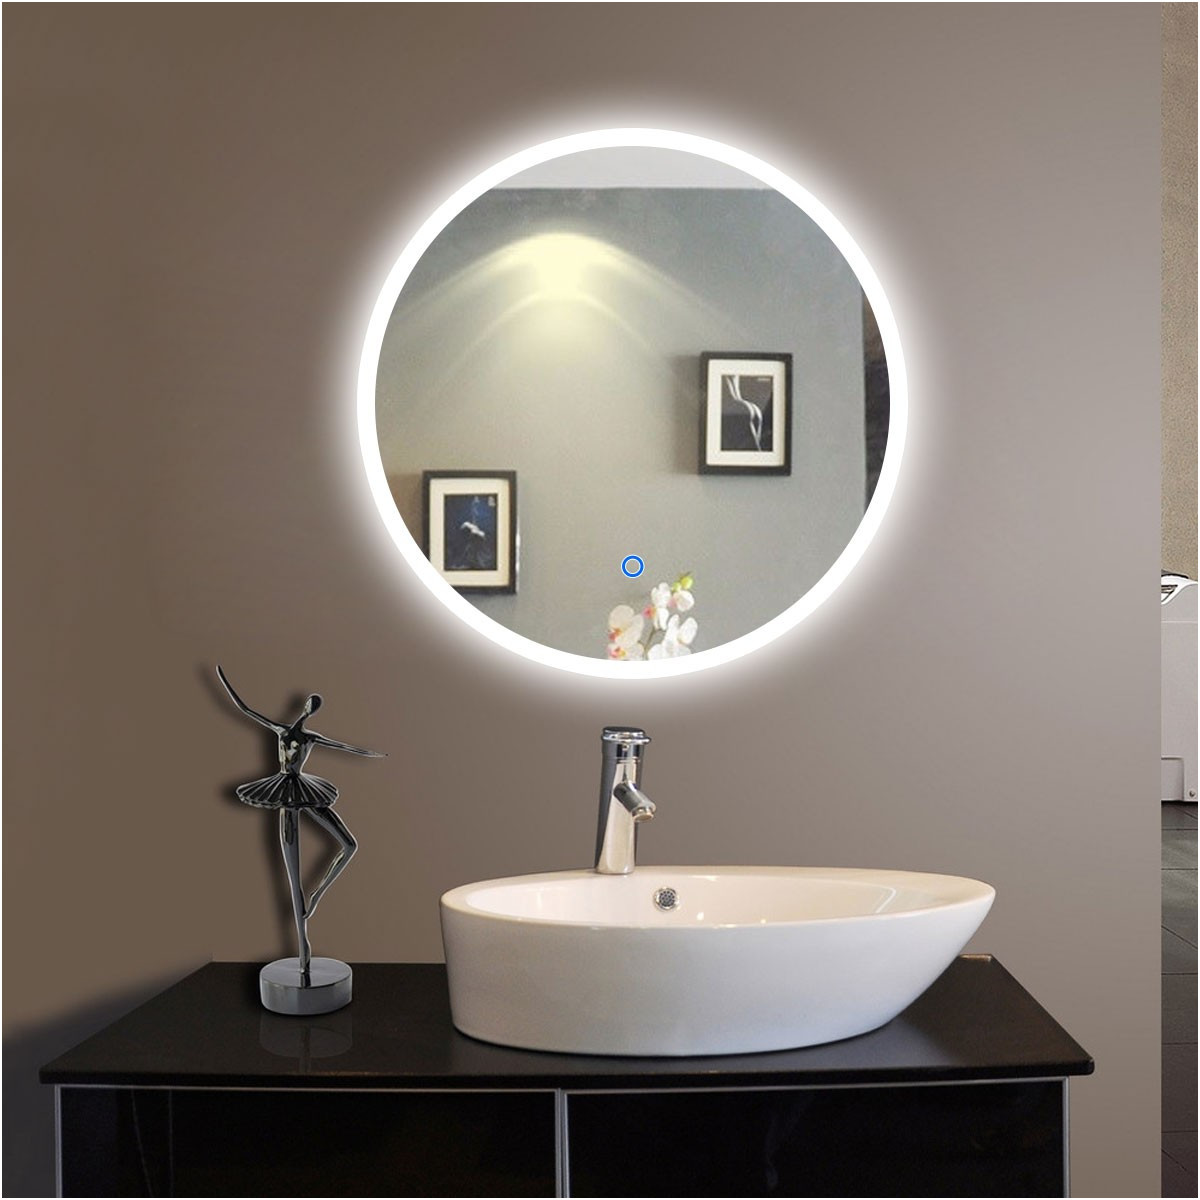 Circular Bathroom Mirrors with Lights Luxury 24 X 24 In Round Led Bathroom Mirror touch button Dk Od Cl065 1